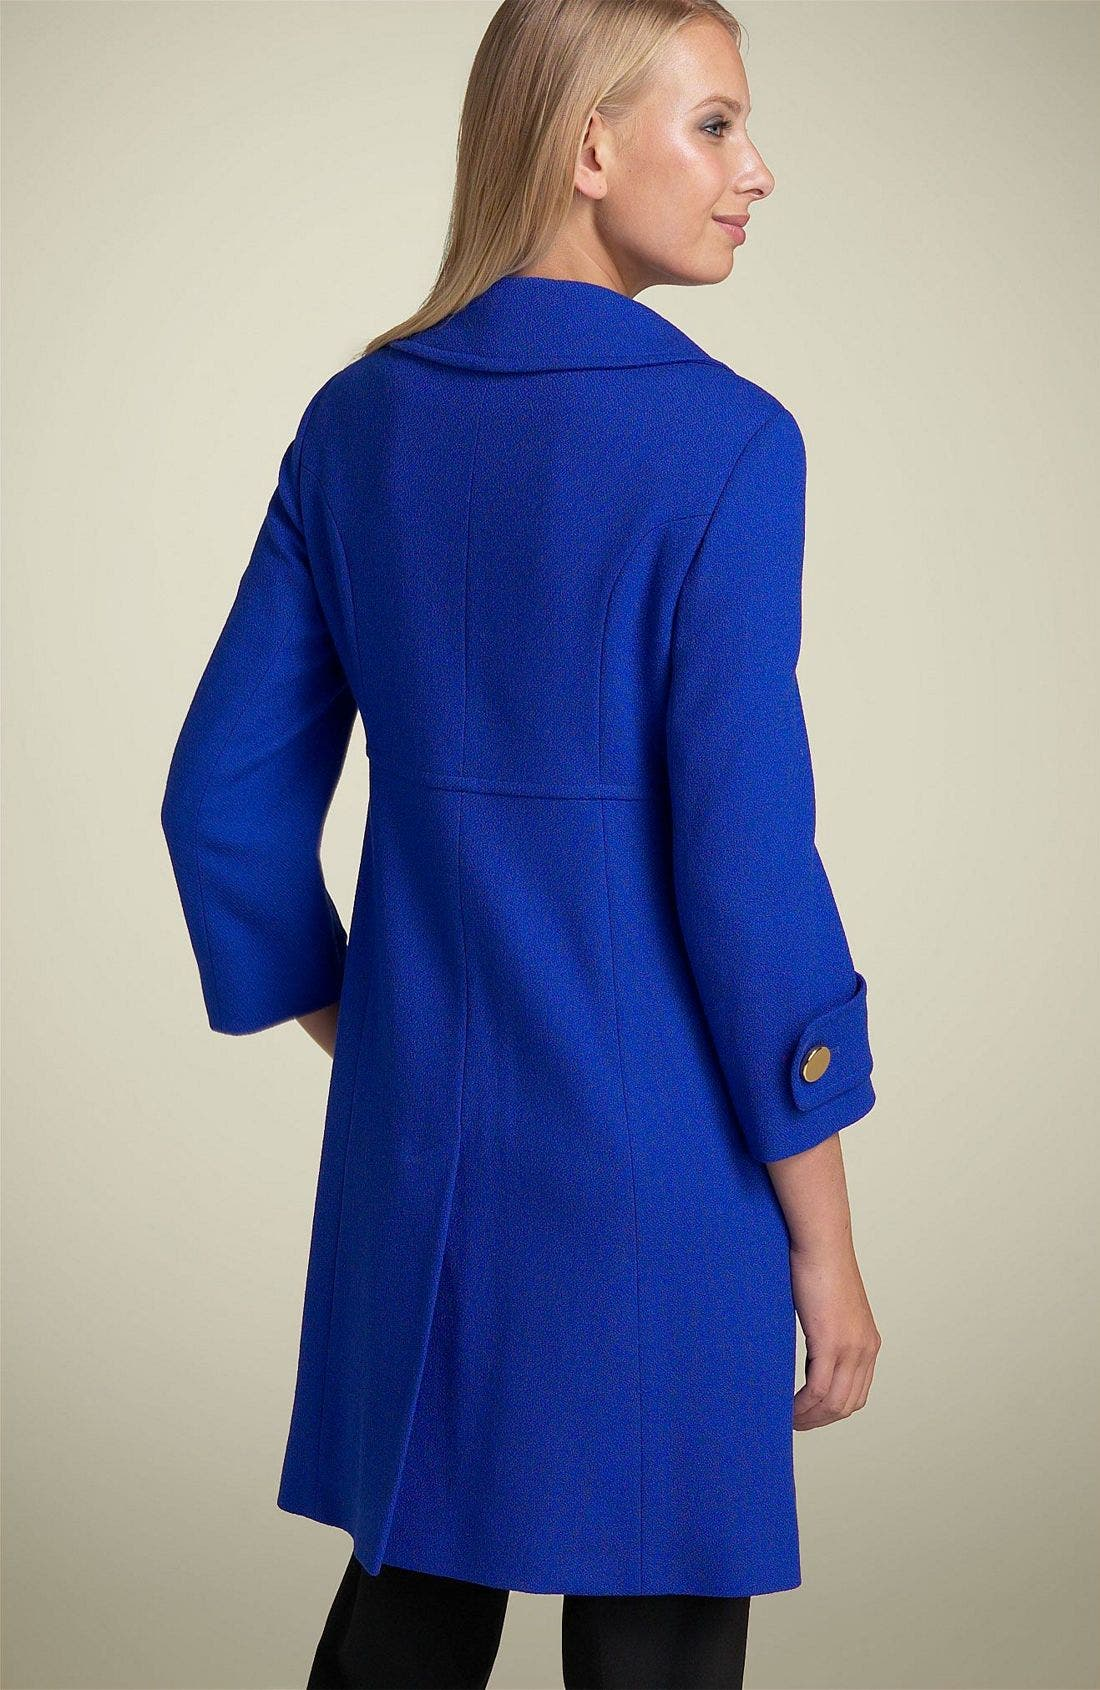 Charles Gray Wool Princess Coat,                             Alternate thumbnail 2, color,                             460